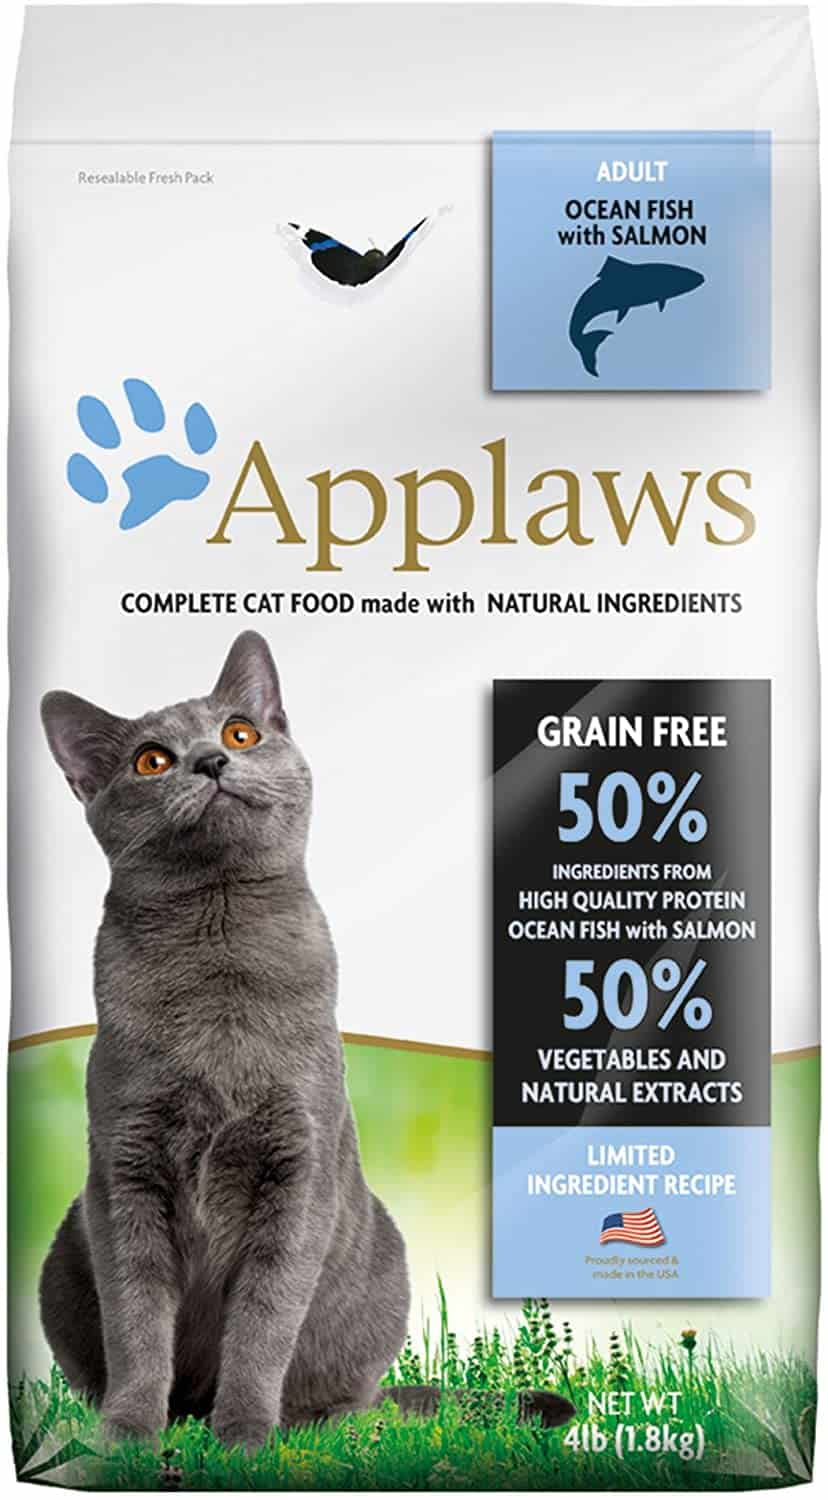 2020 Applaws Cat Food Reviews: Naturally Nutritious Cat Food 3